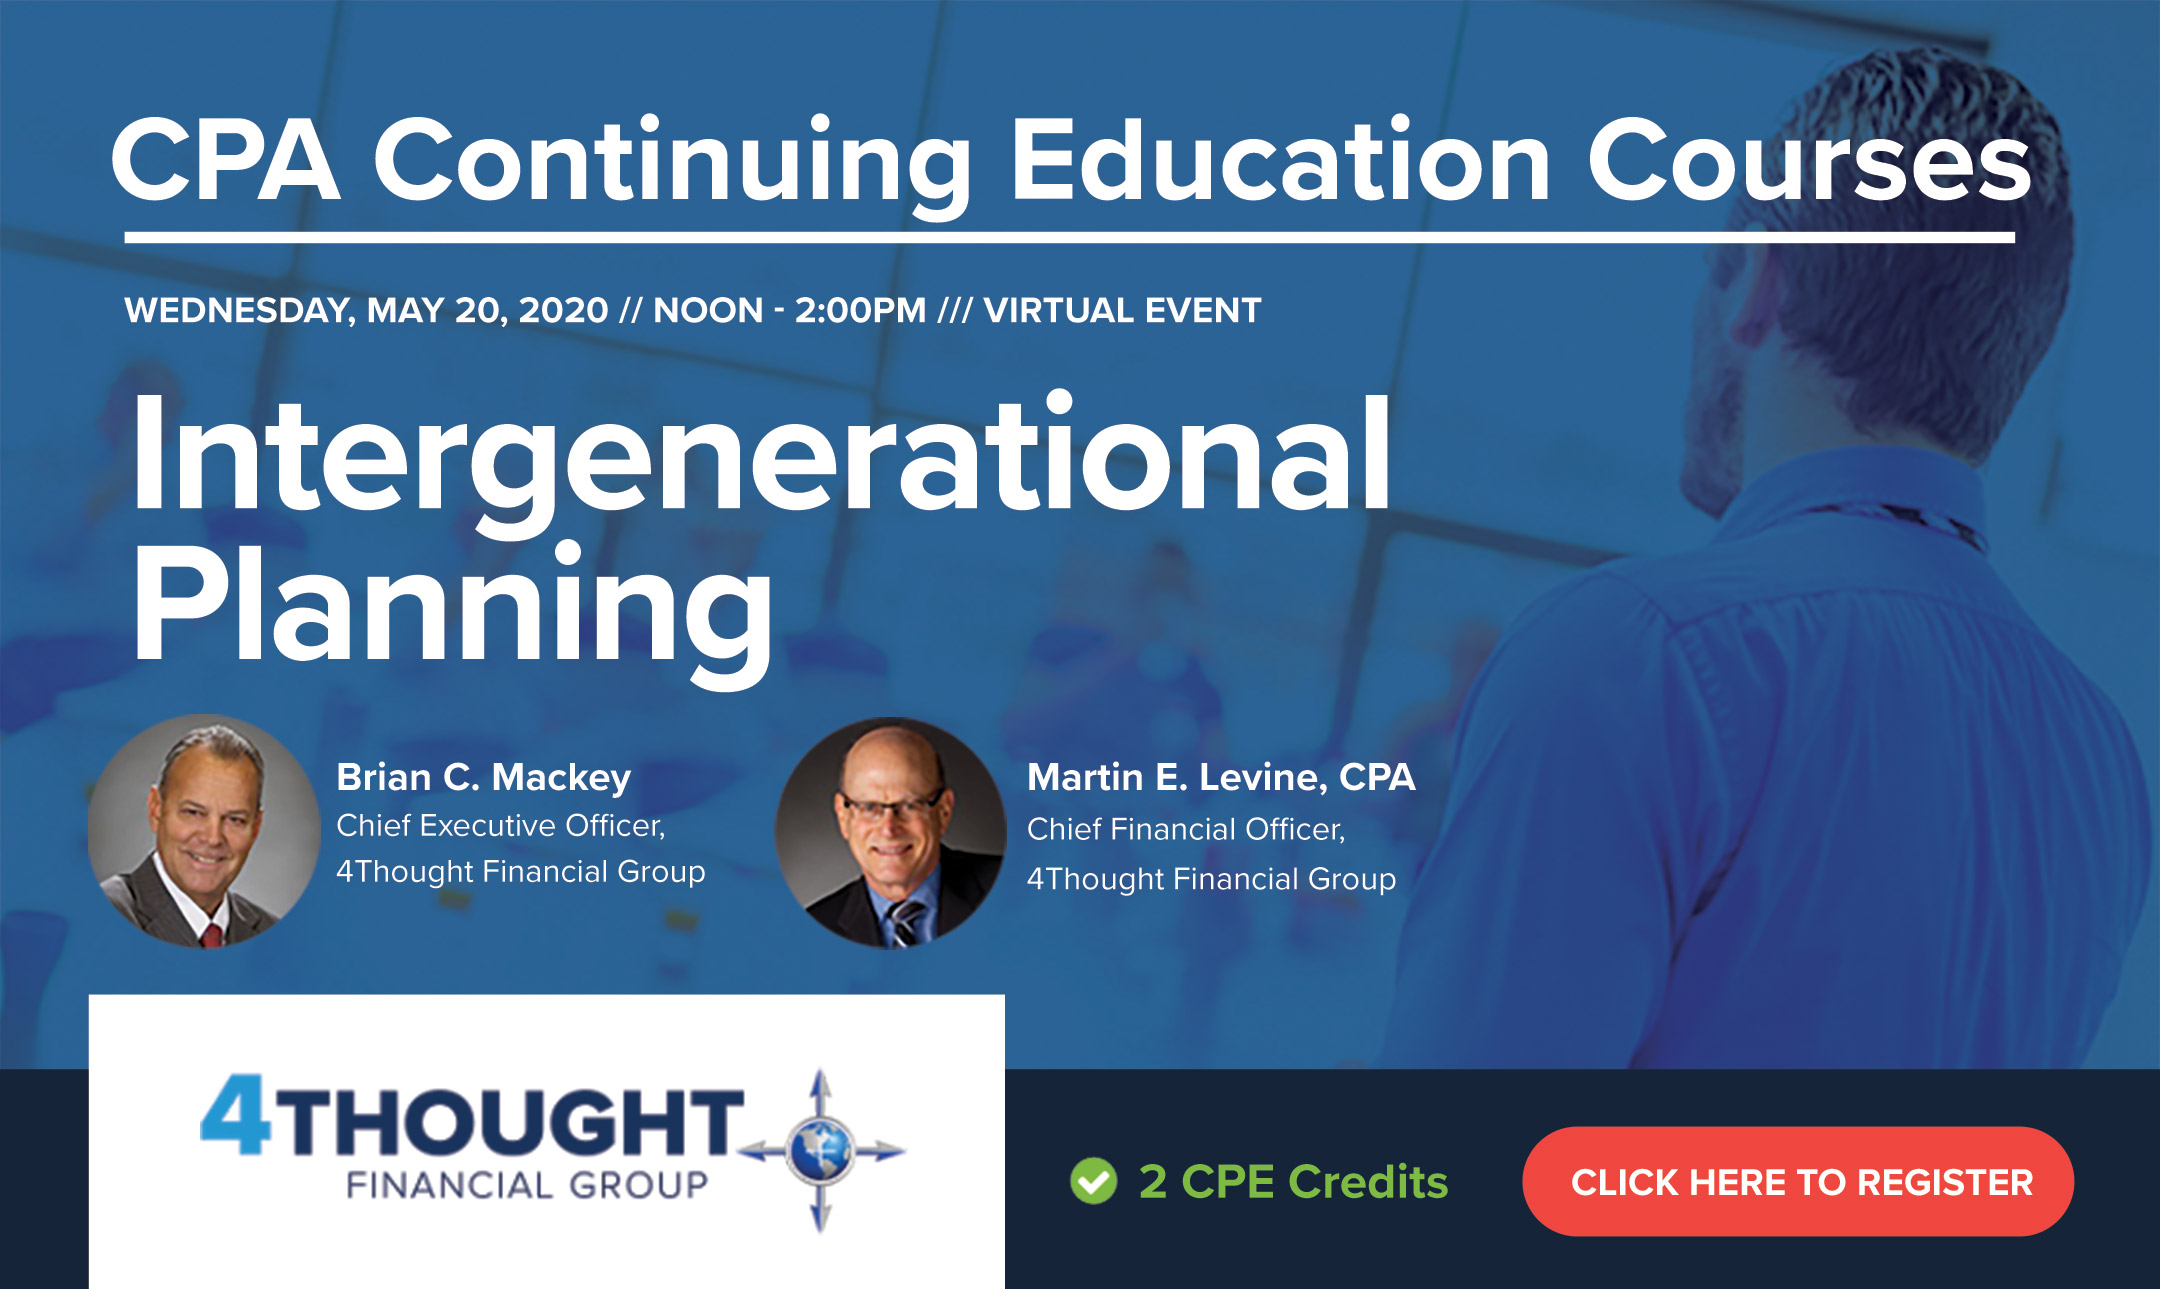 CPA Continuing Education Course:Intergenerational Planning